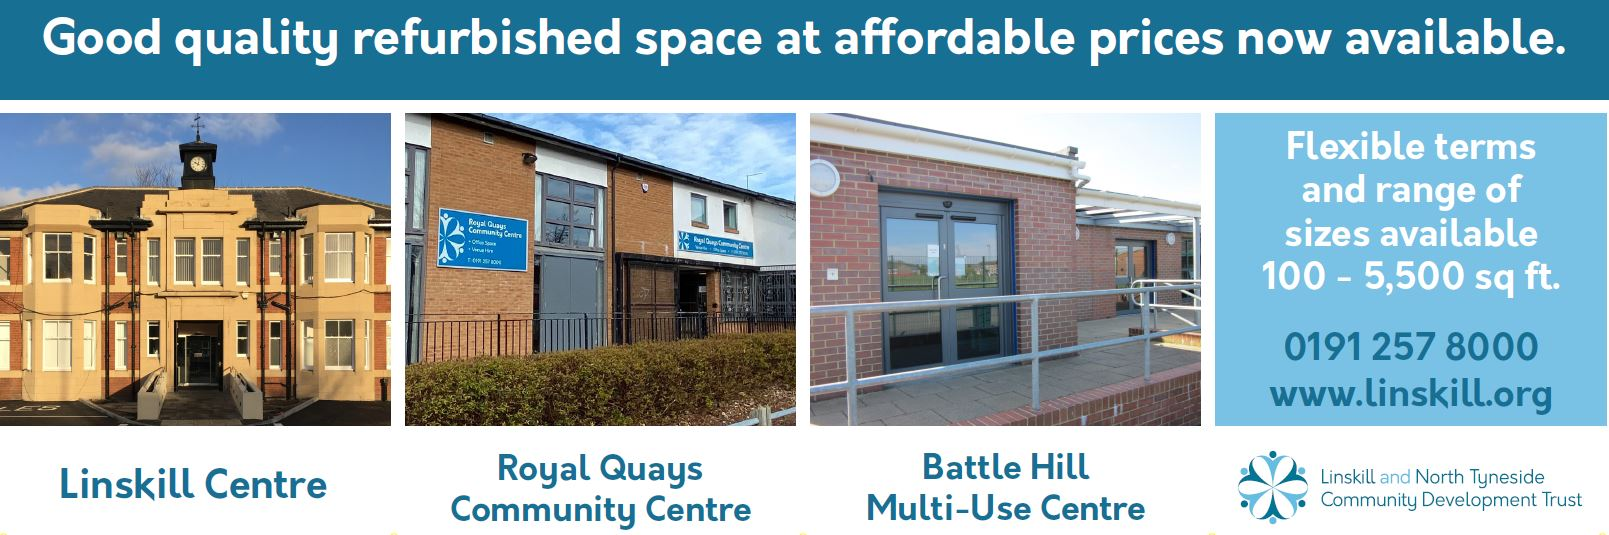 Refurbished space now available at the Linskill Centre